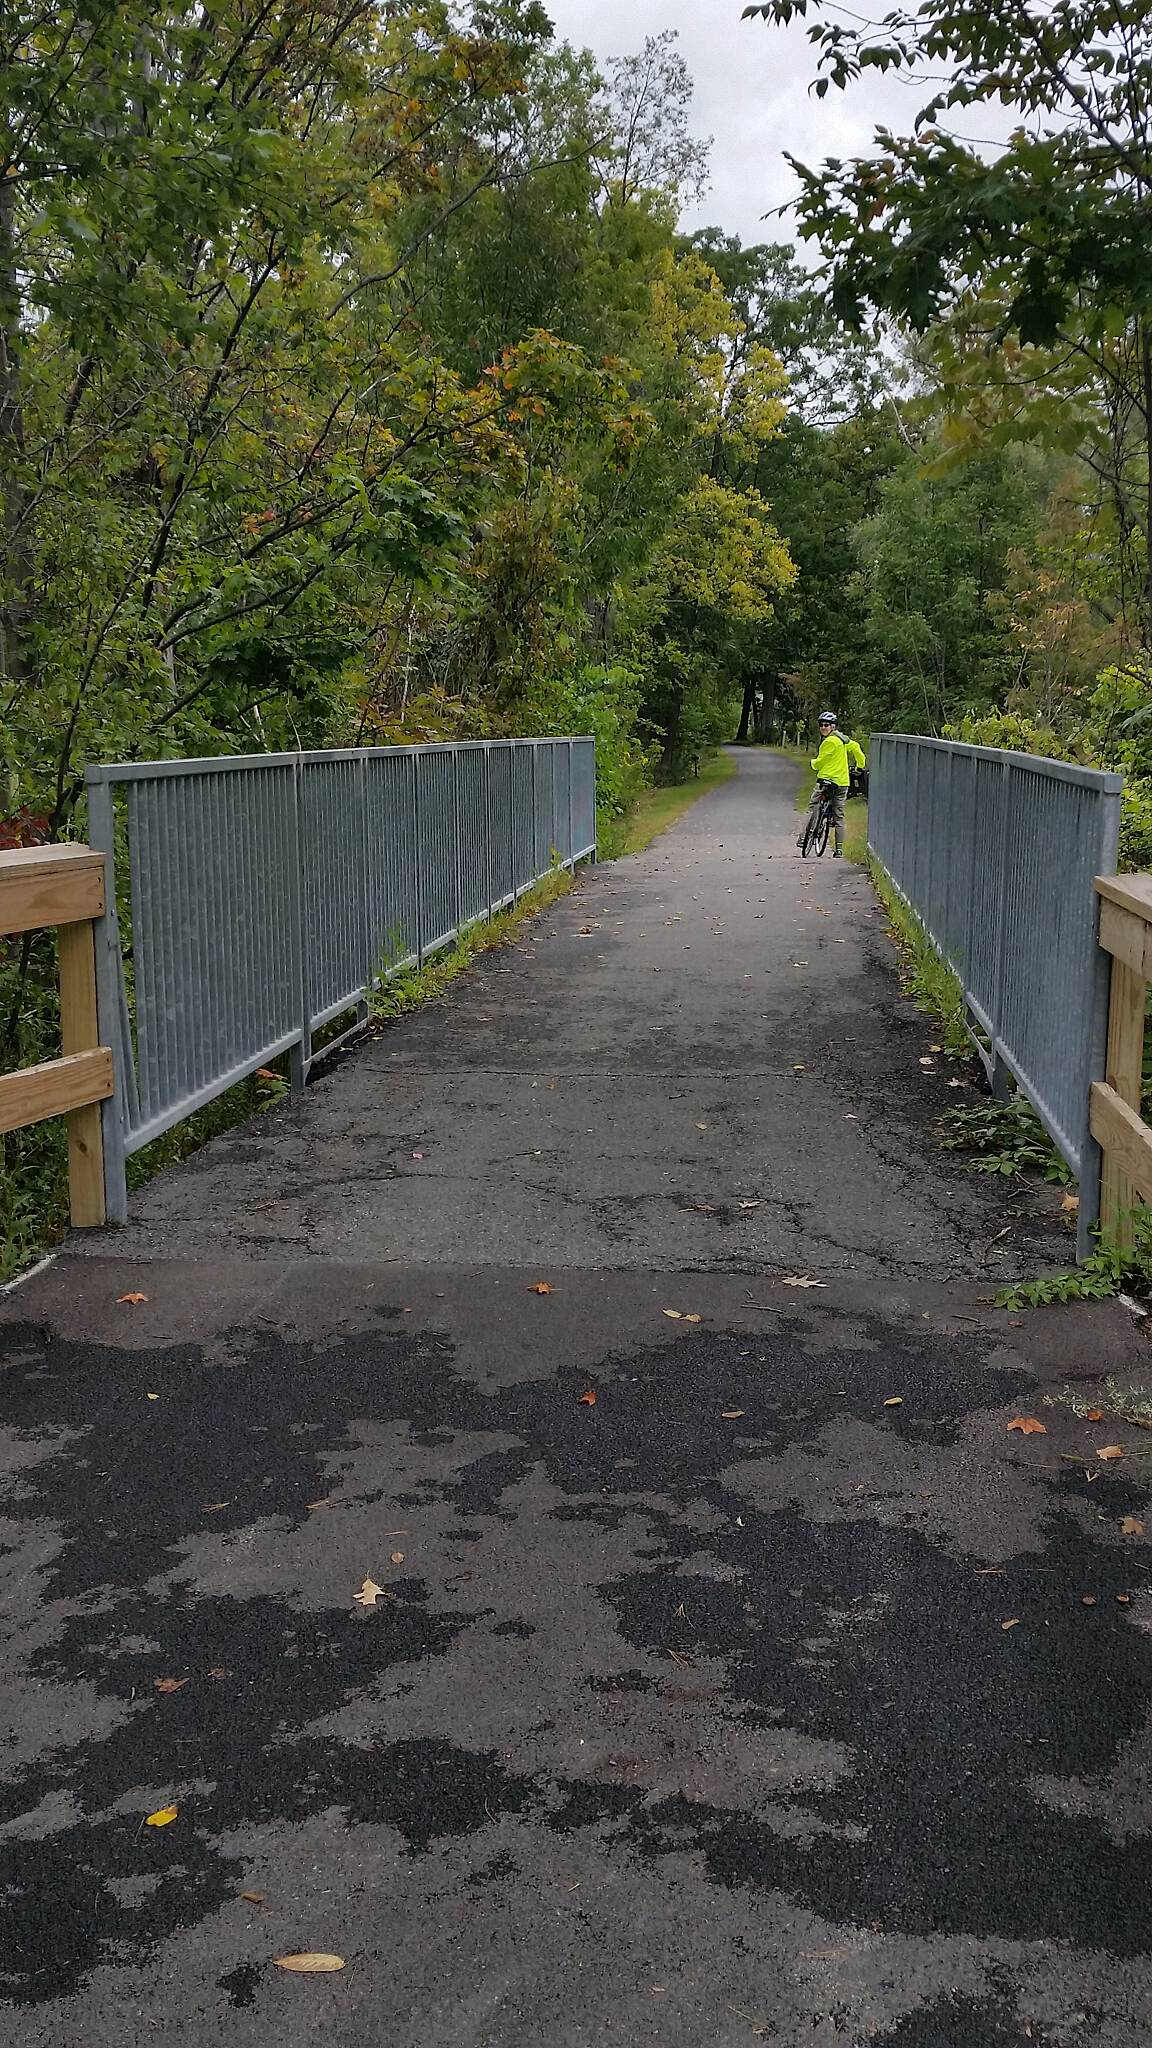 East Ithaca Recreation Way East Ithaca Recreation Way East Ithaca Recreation Way.  Photo taken 9/2017